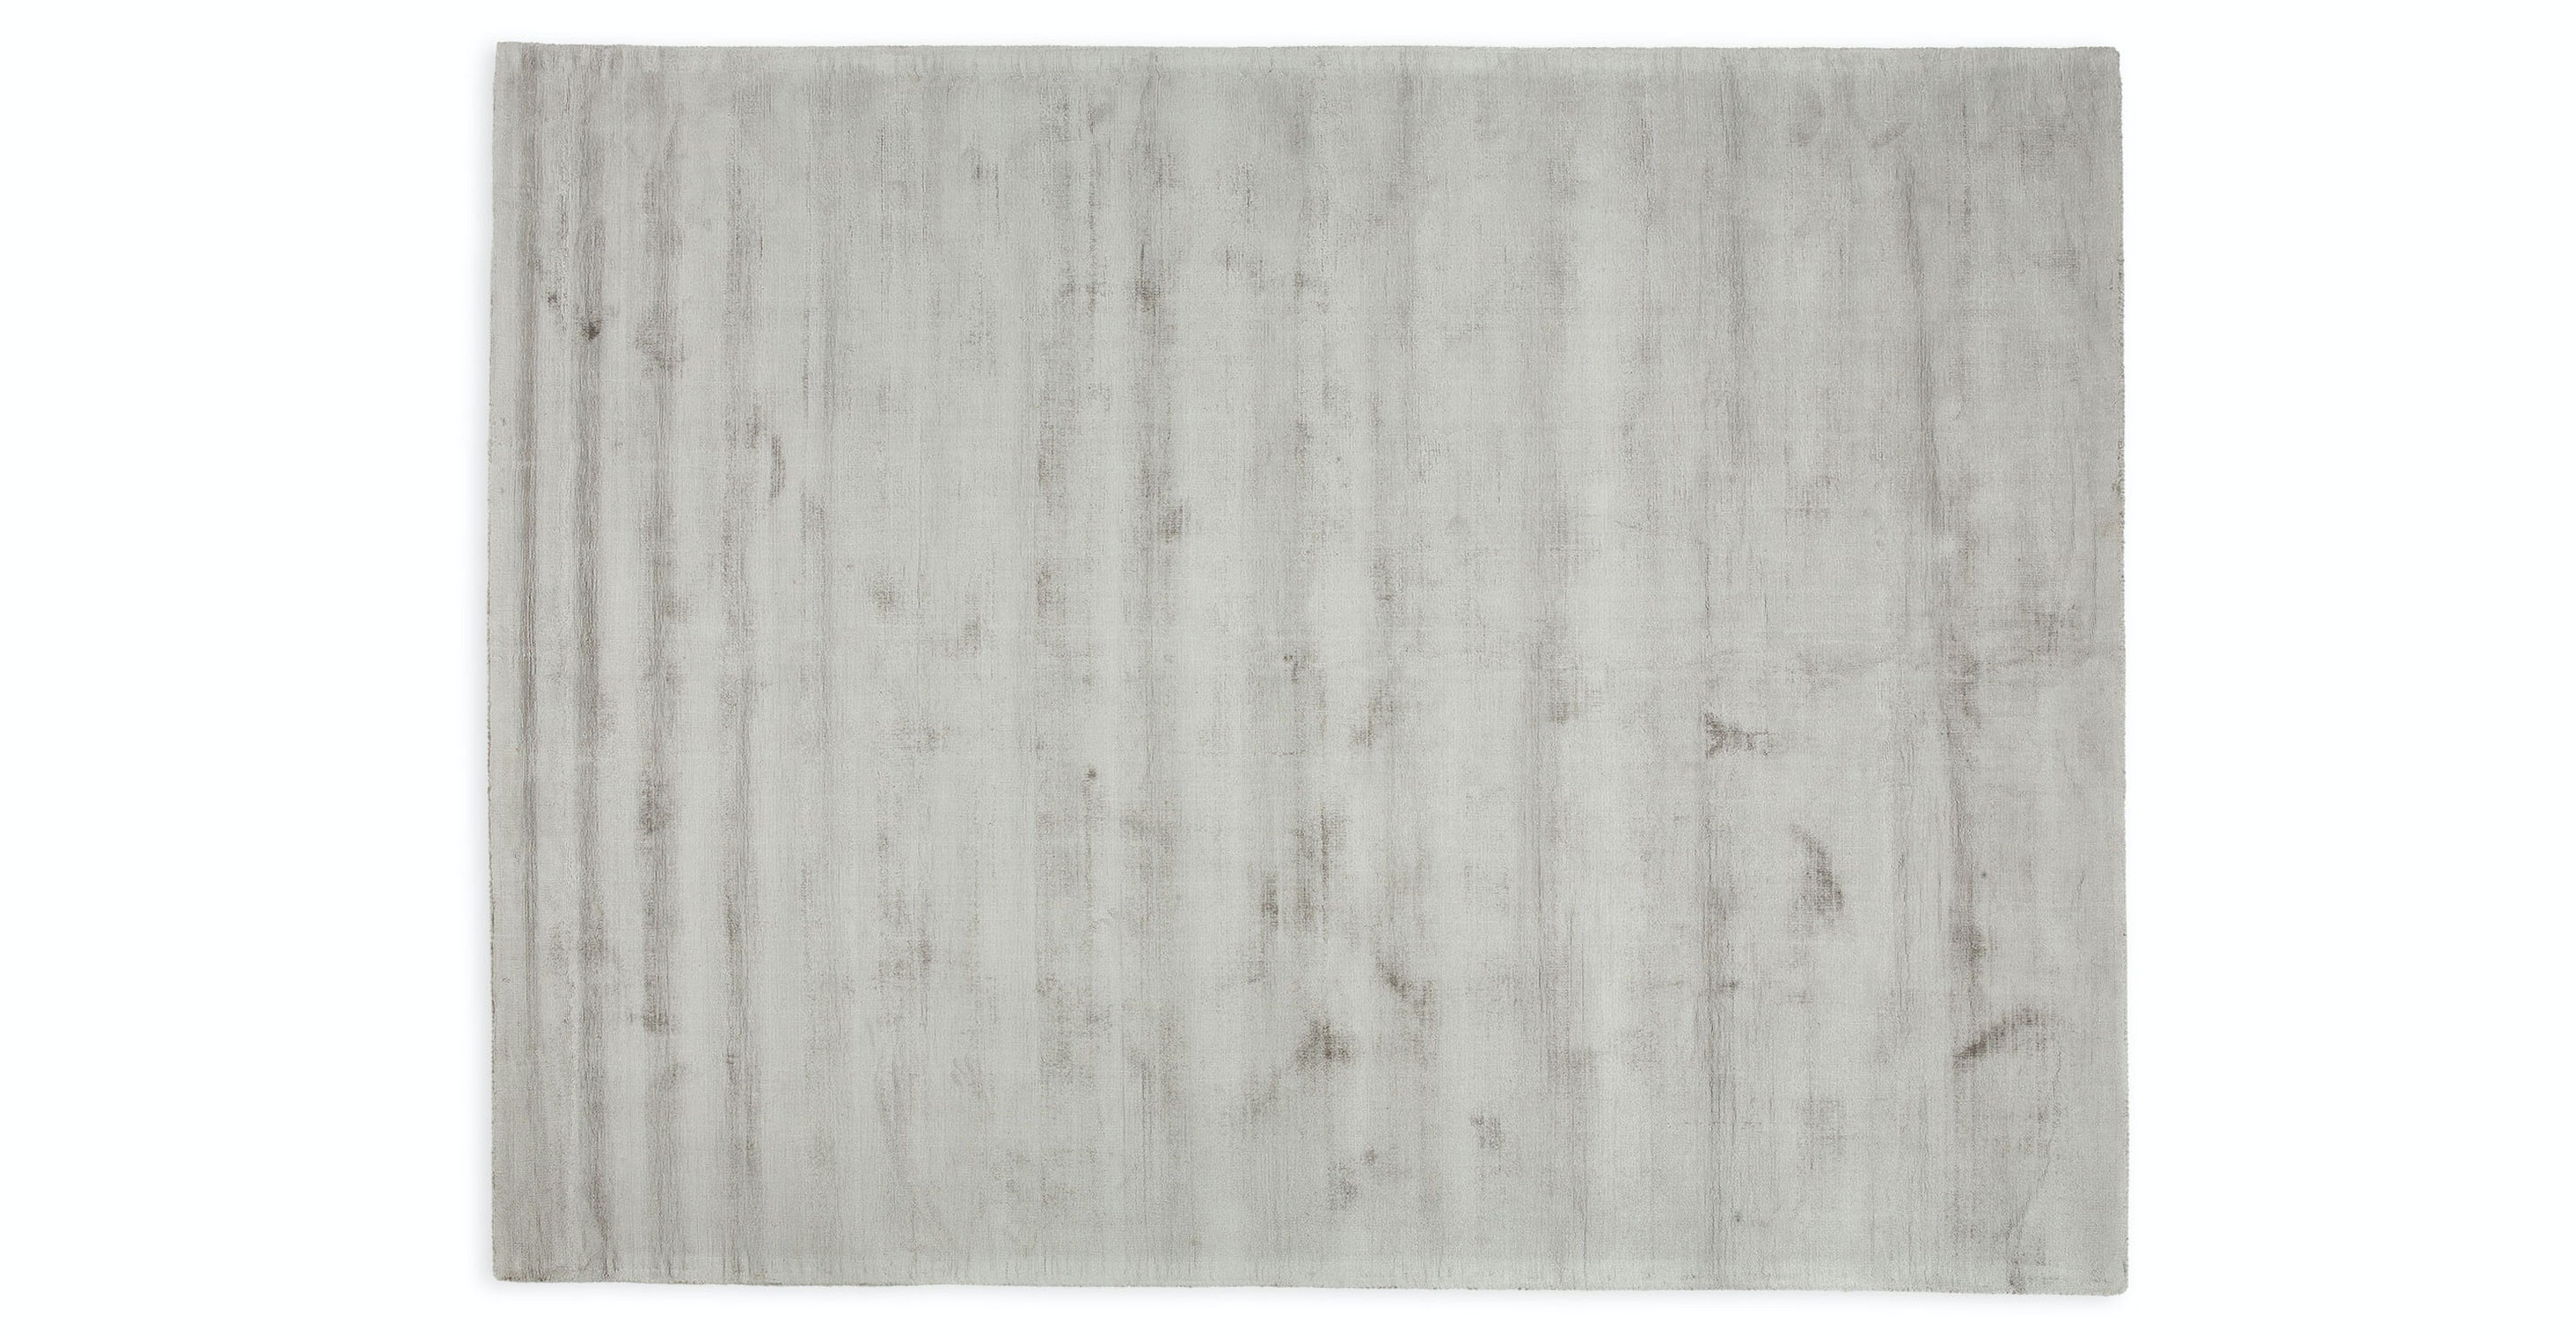 area rug sizes crush dove gray rug 9 x 12 9 x 12 rugs article 29208